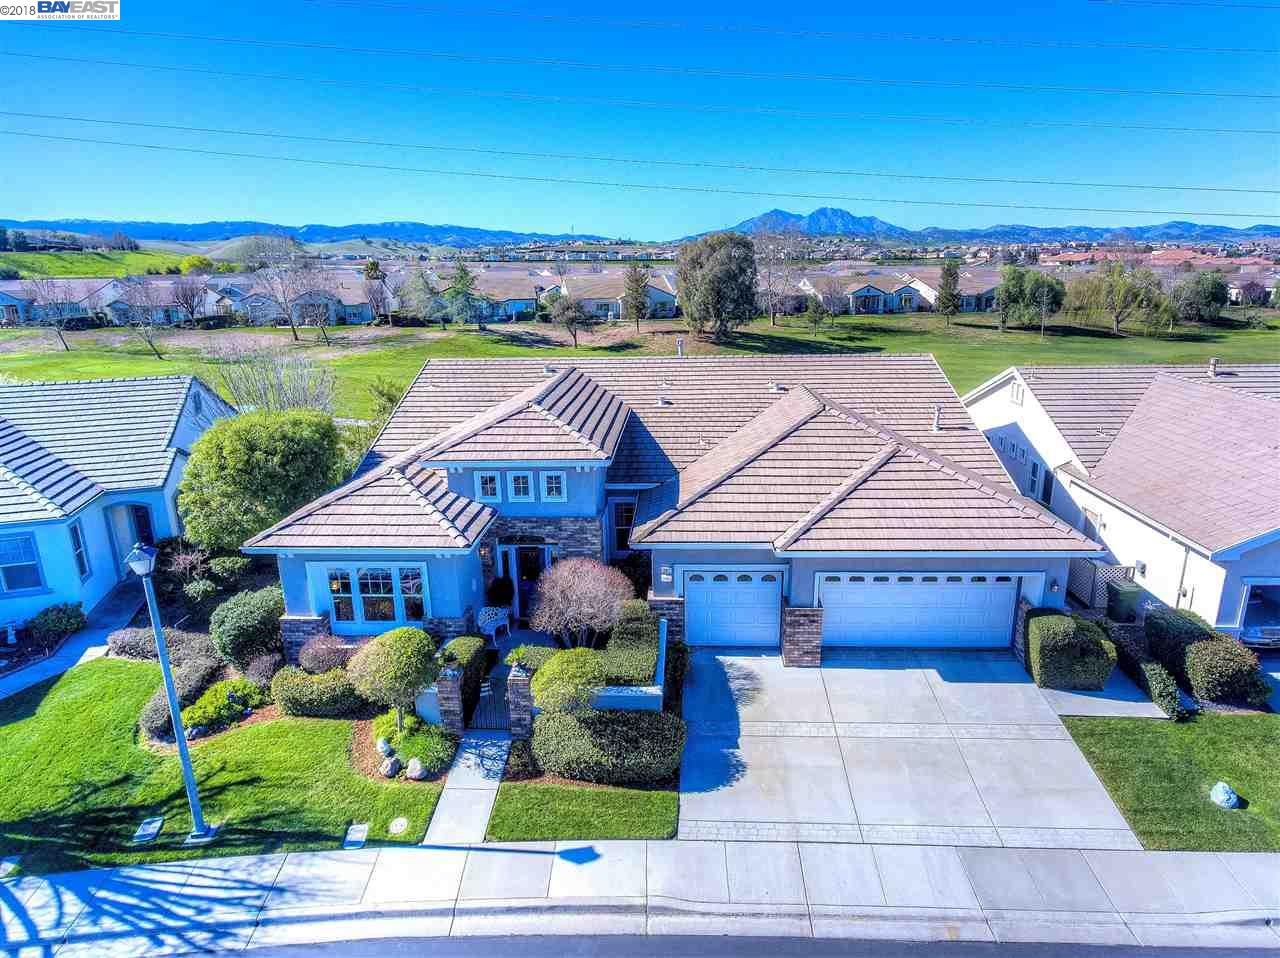 Single Family Home for Sale at 391 Grenadier Way 391 Grenadier Way Brentwood, California 94513 United States